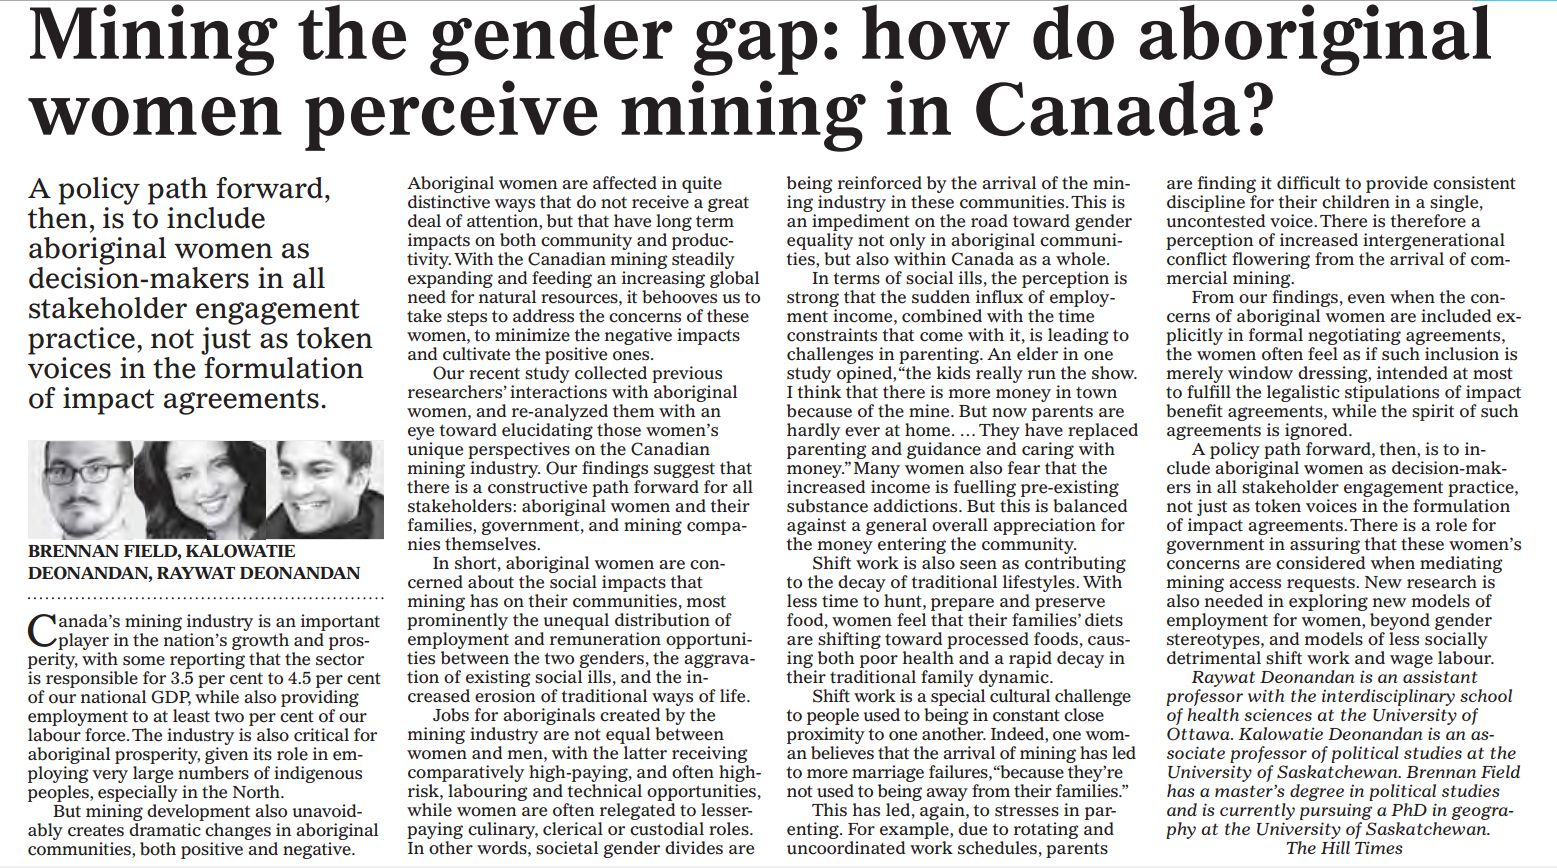 an analysis of the importance of mining in canada Business-oriented meetings in blue, research meetings (with calls for papers and program committee) in green october 2018 oct 25, observepoint analytics summit, free online event.